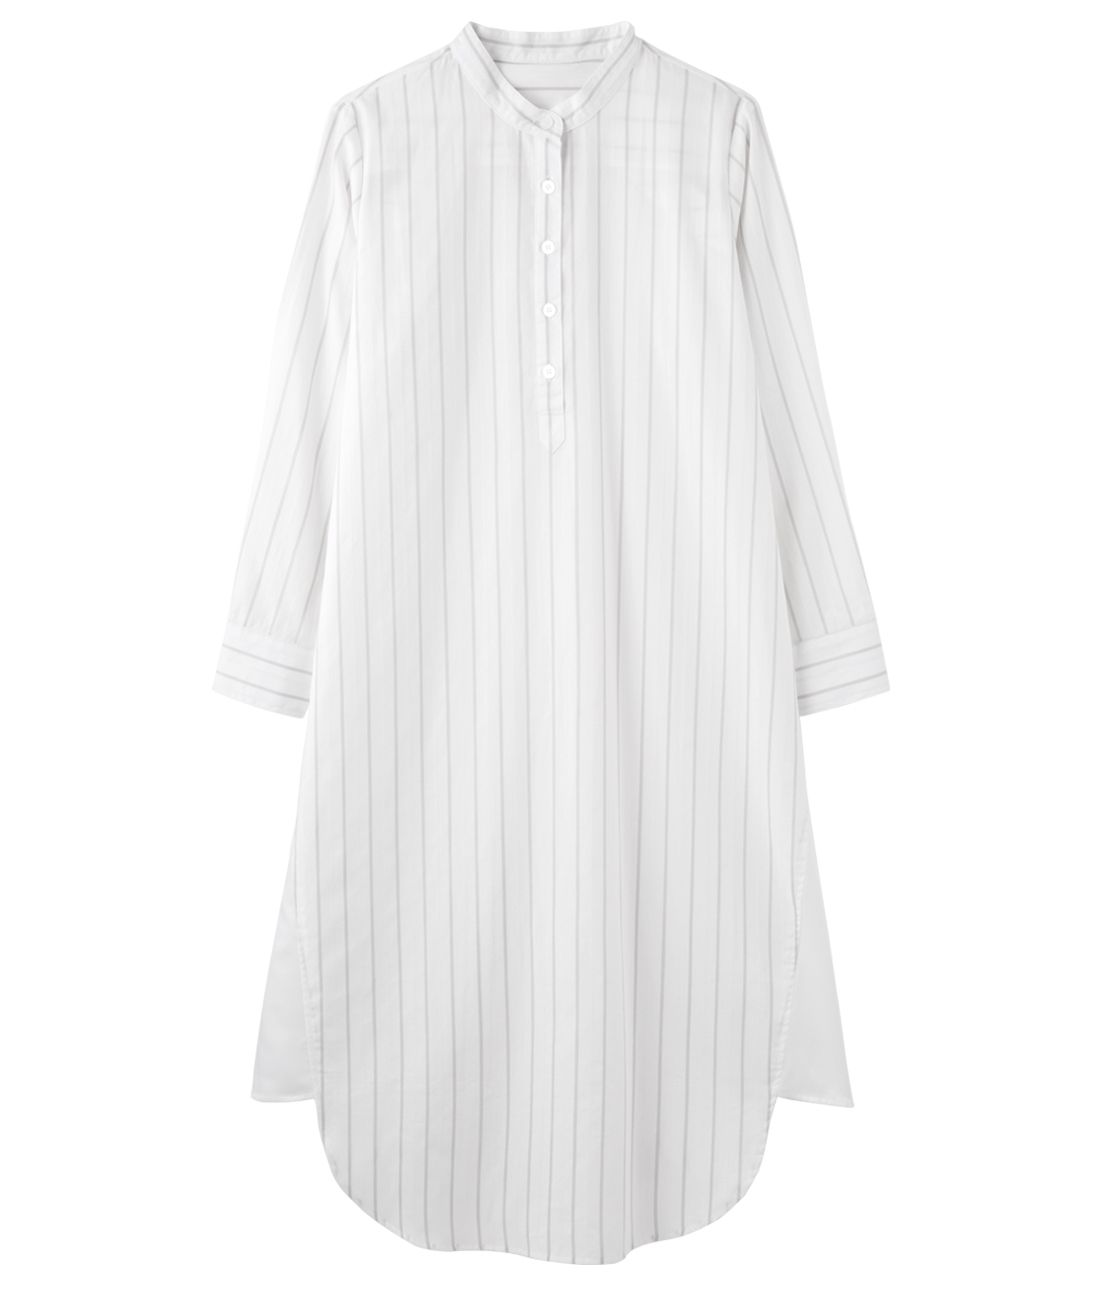 Stripe jacquard shirt dress